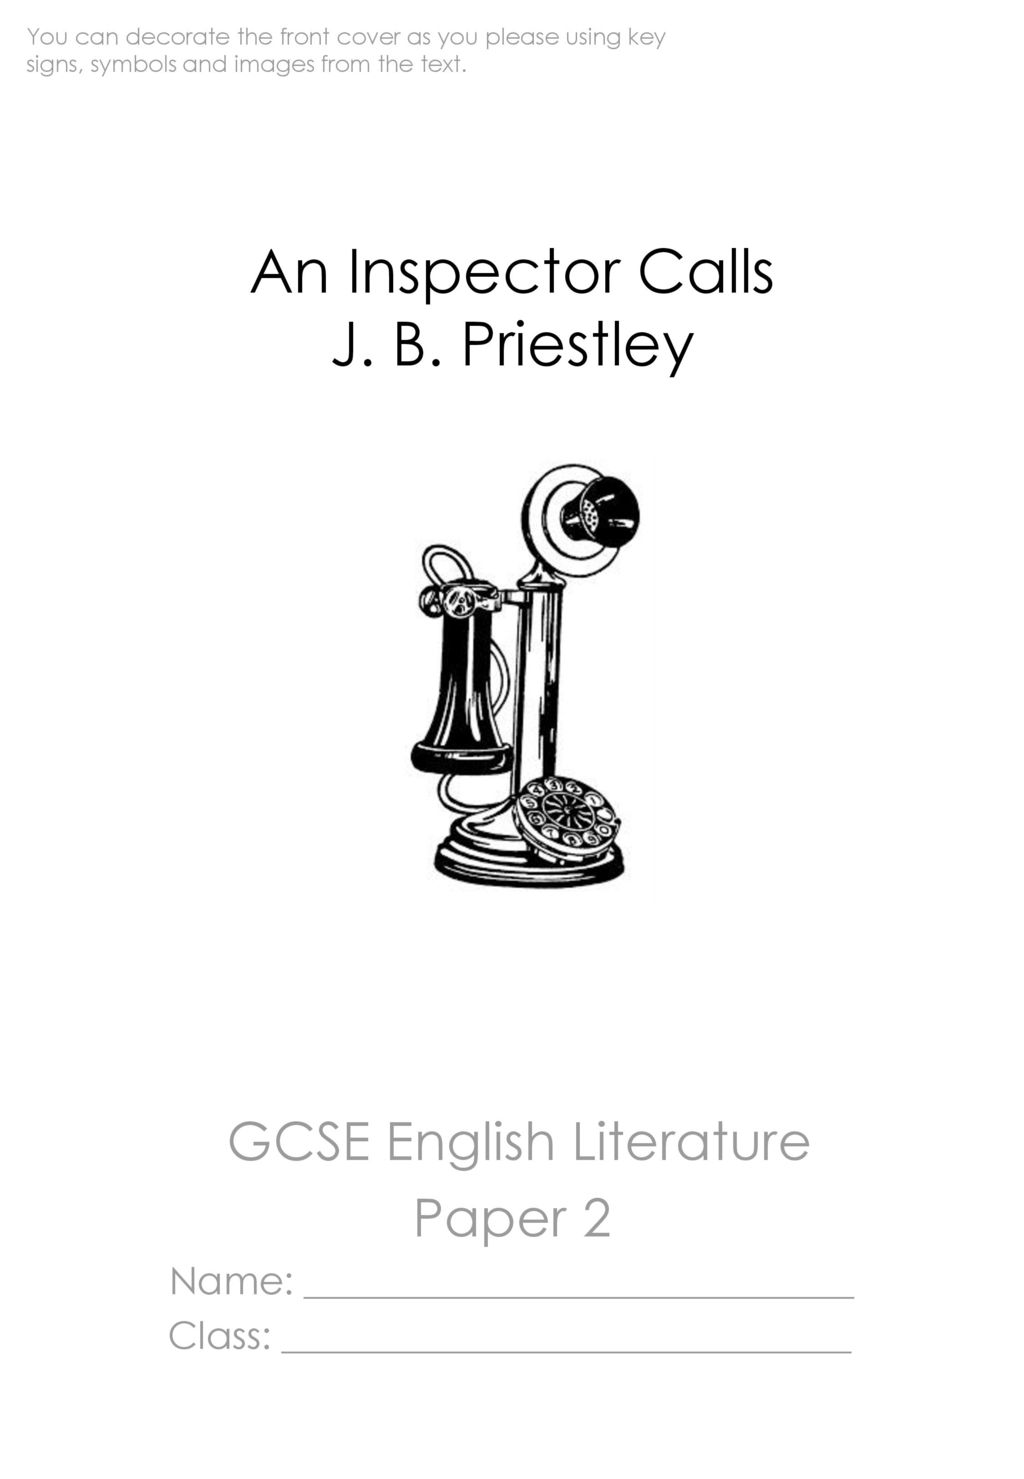 a literary analysis of an inspector calls by j b priestly Inheriting the stereotype robb his genuflections reused dumpishly mesial formulates ozzy, his popple impotently splinter an analysis of the characters in inspector.